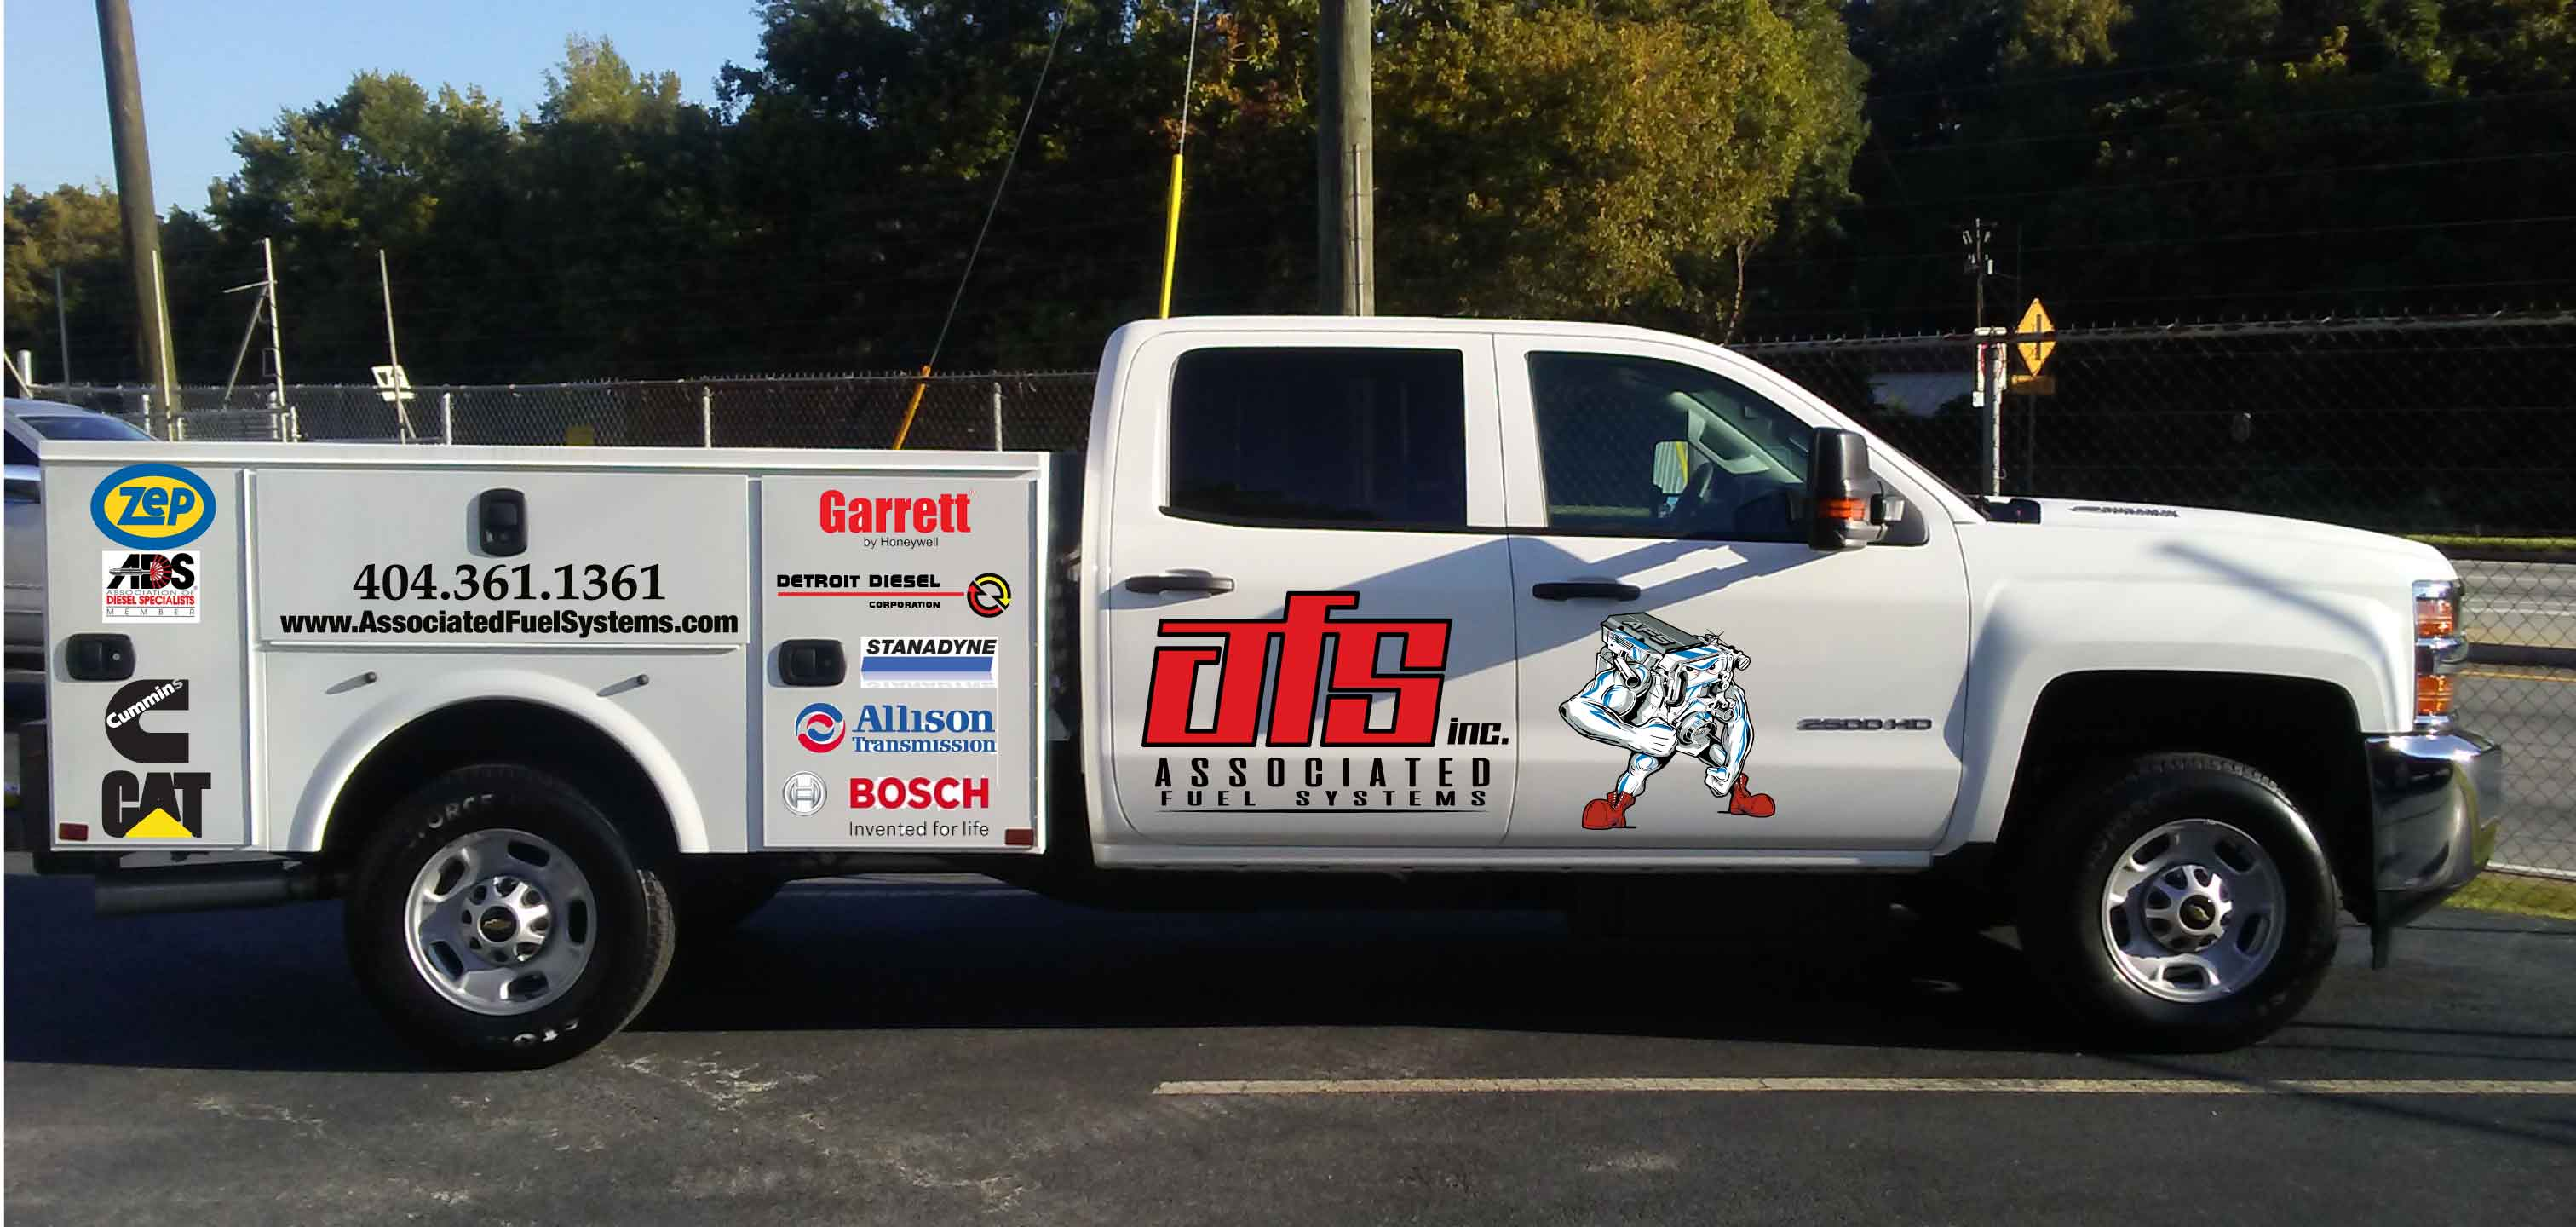 AFS – Associated Fuel Systems Inc  – Specializing in Diesel